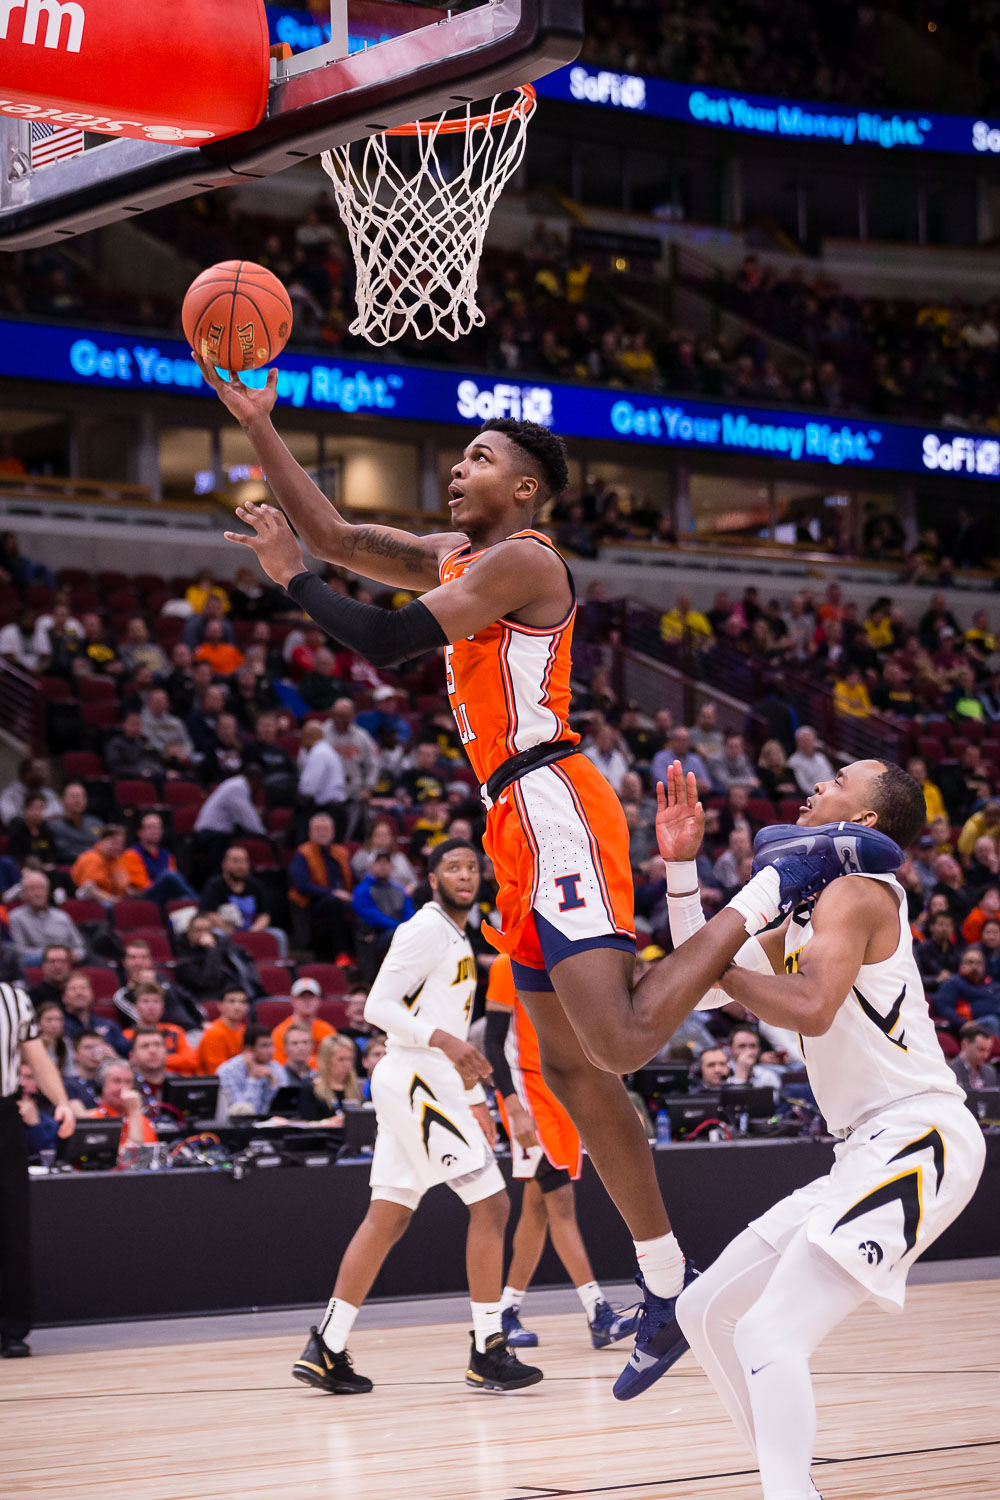 Illinois+guard+Tevian+Jones+%285%29+puts+up+a+layup+during+the+game+against+Iowa+in+the+second+round+of+the+Big+Ten+Tournament+at+the+United+Center+on+Thursday%2C+March+14.+The+Illini+lost+83-62.